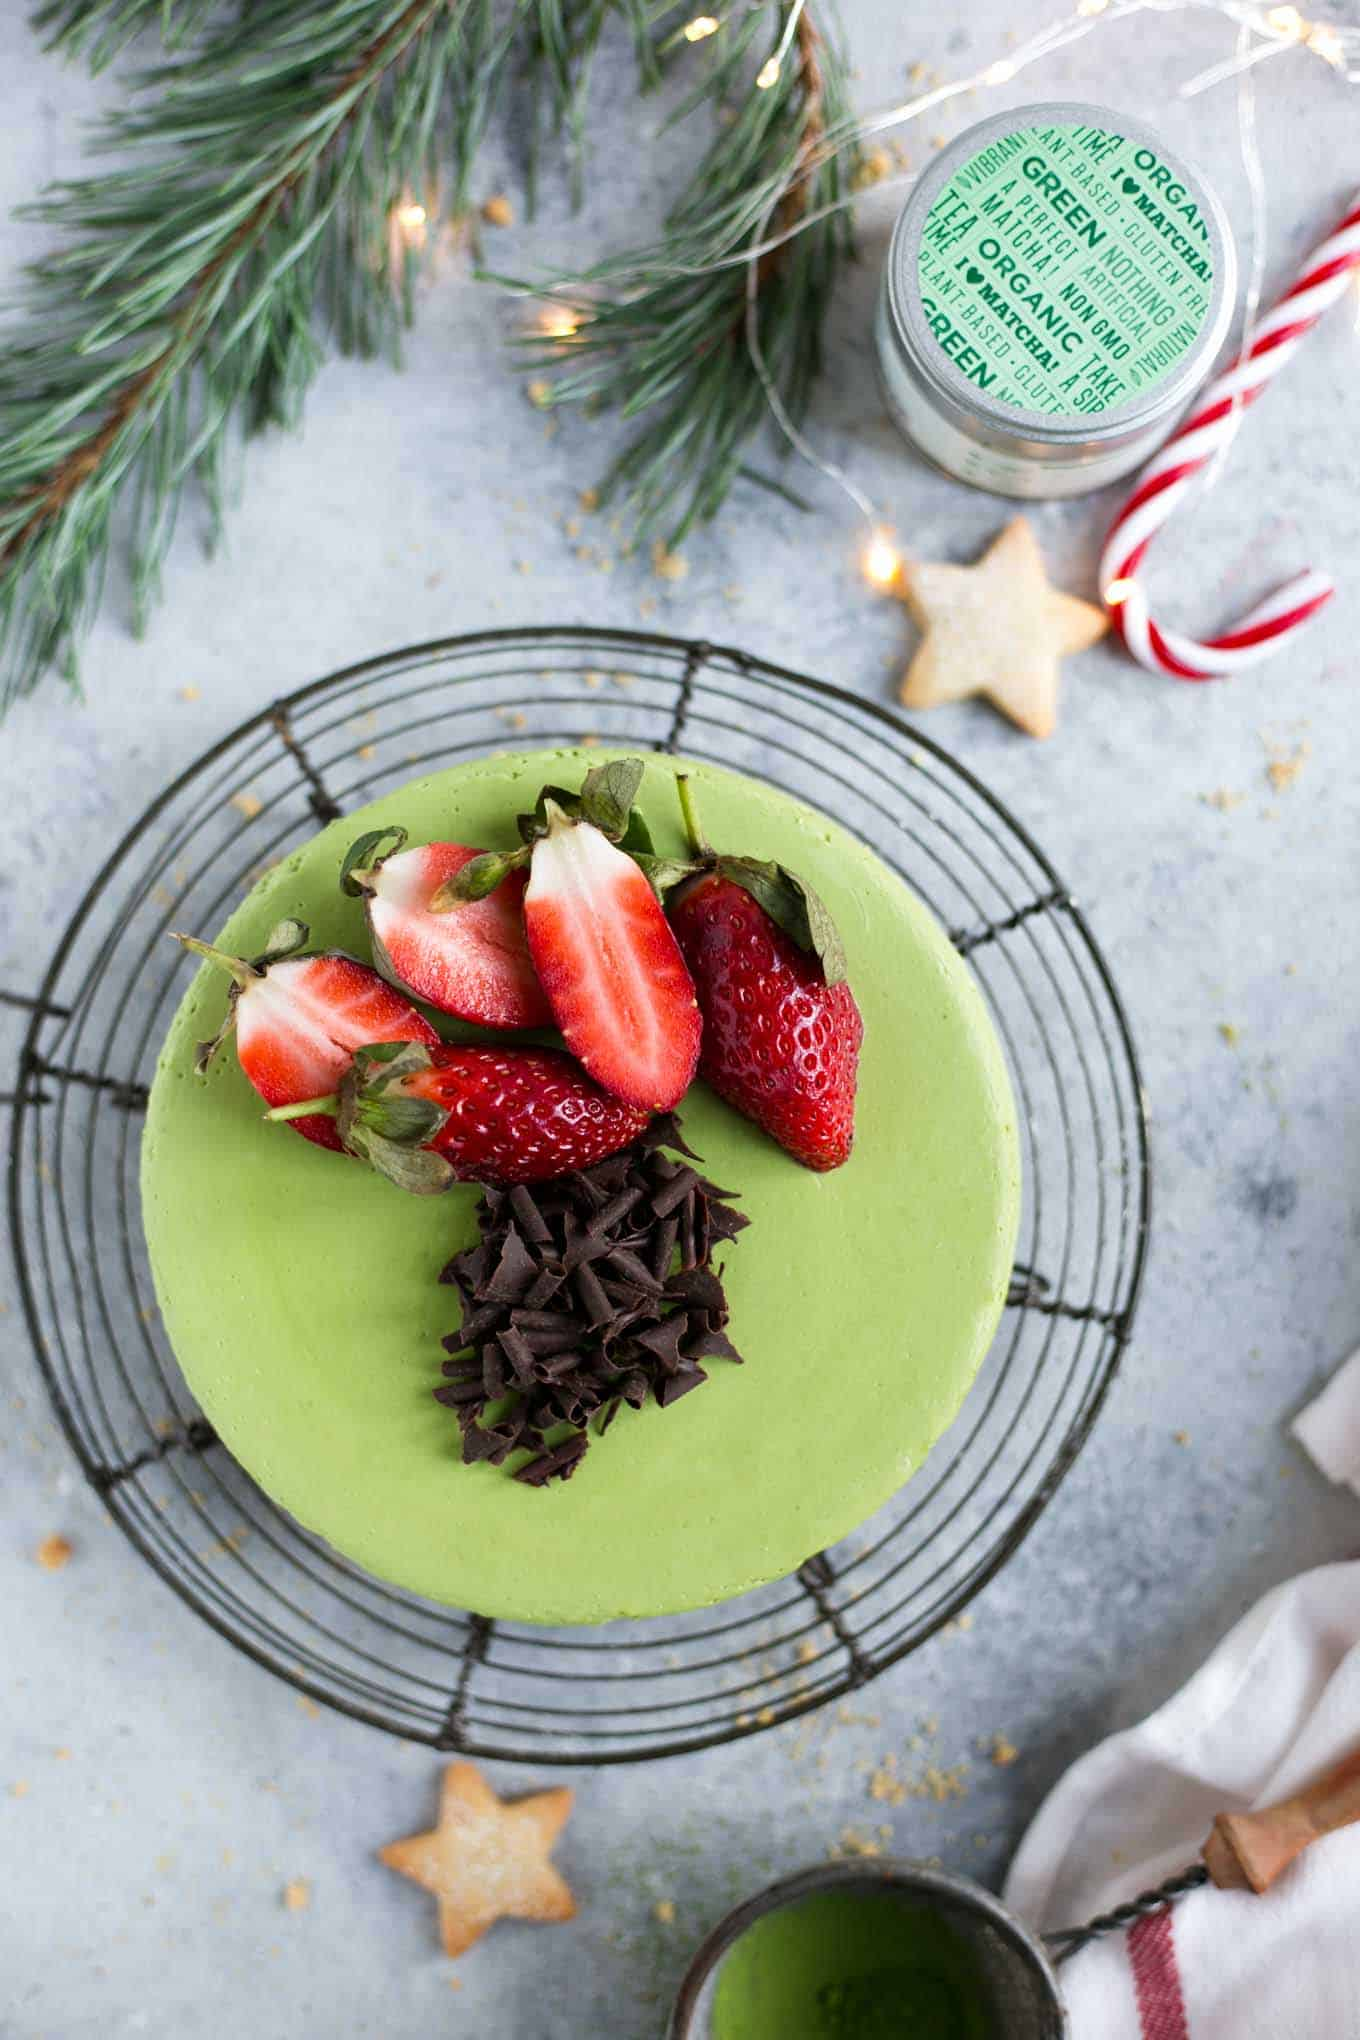 Matcha cheesecake with ginger flavoured base, super creamy and smooth cake made with green matcha tea! #vegan #dairyfree #cheesecake #matcha | via @annabanana.co